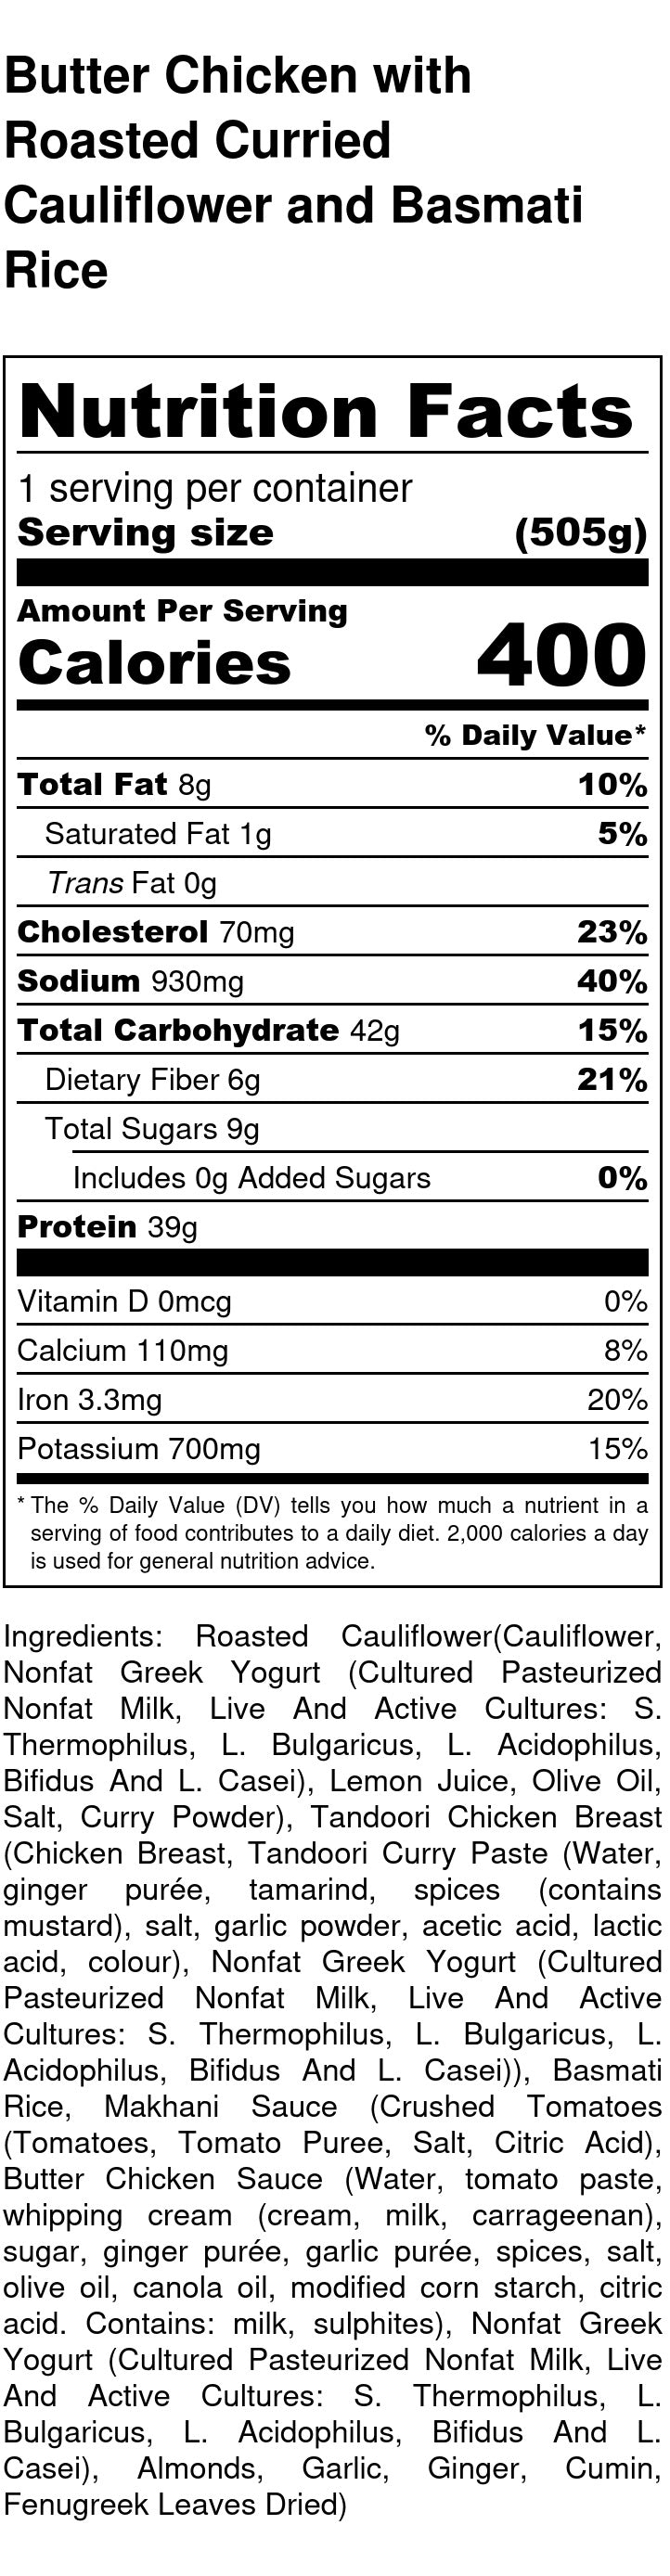 Butter Chicken Nutrition Facts